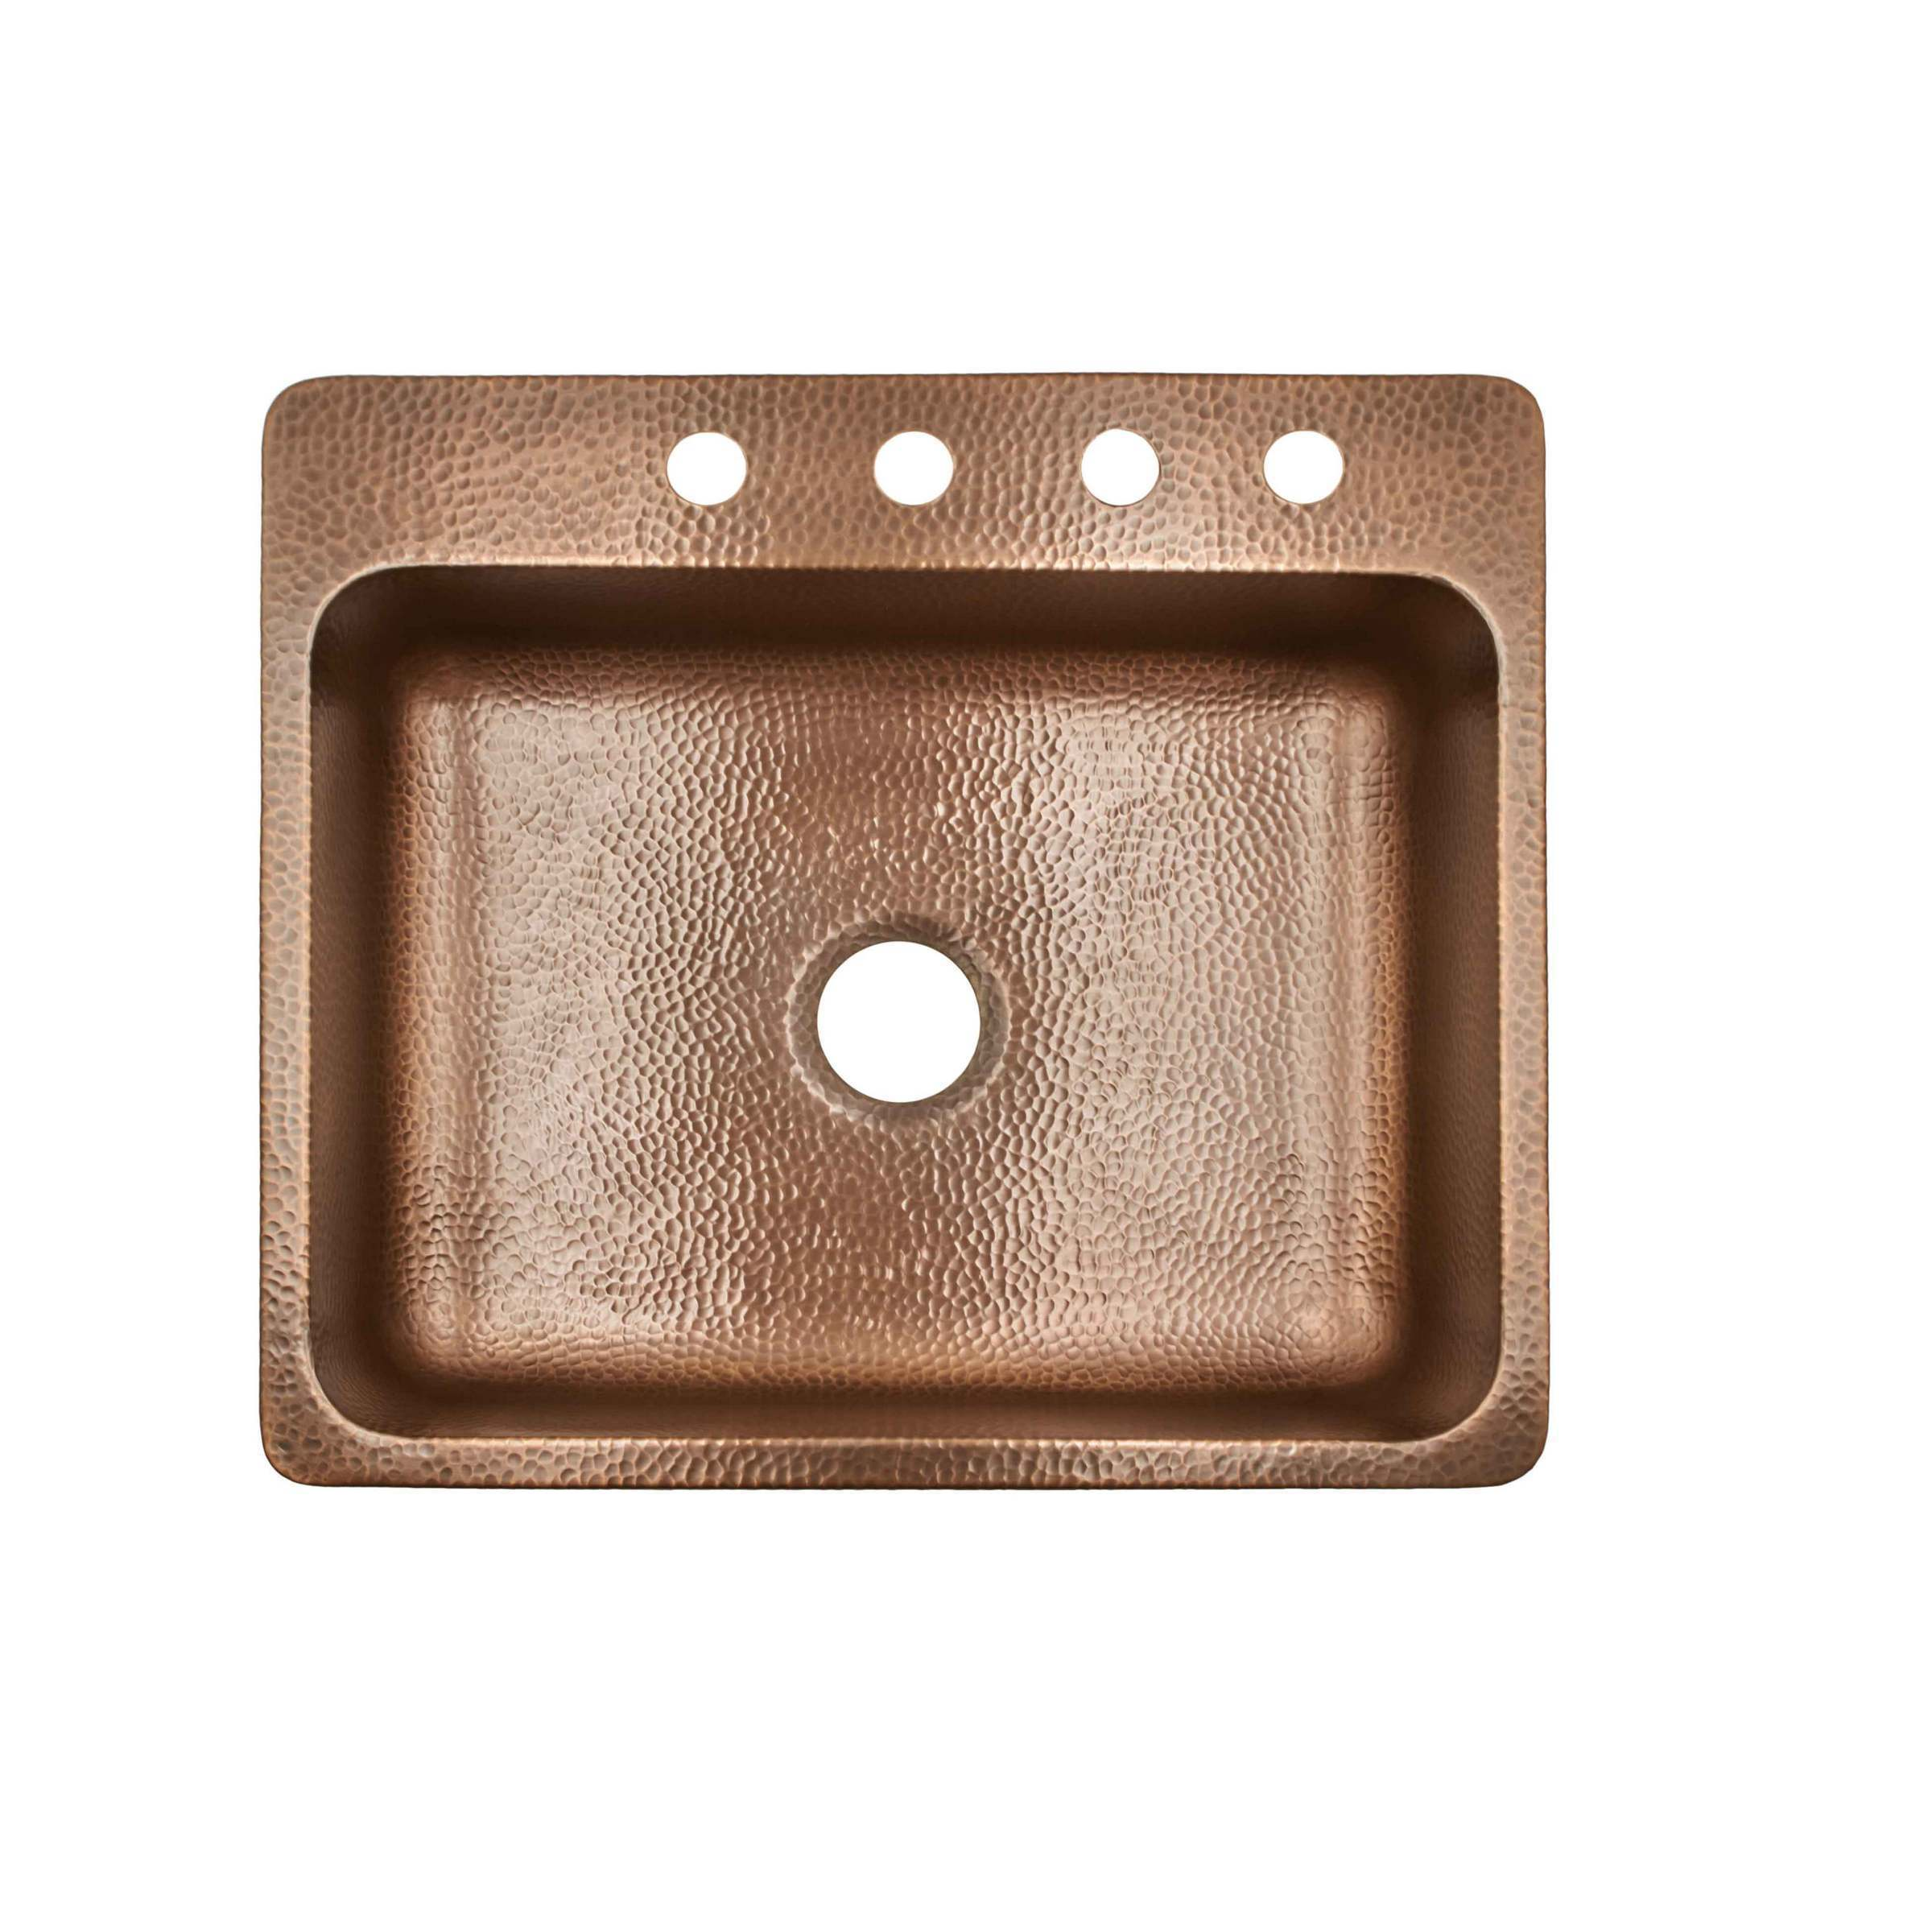 sinkology rosa drop in 25   4 hole kitchen sink in antique copper   free shipping today   overstock com   20975174 sinkology rosa drop in 25   4 hole kitchen sink in antique copper      rh   overstock com